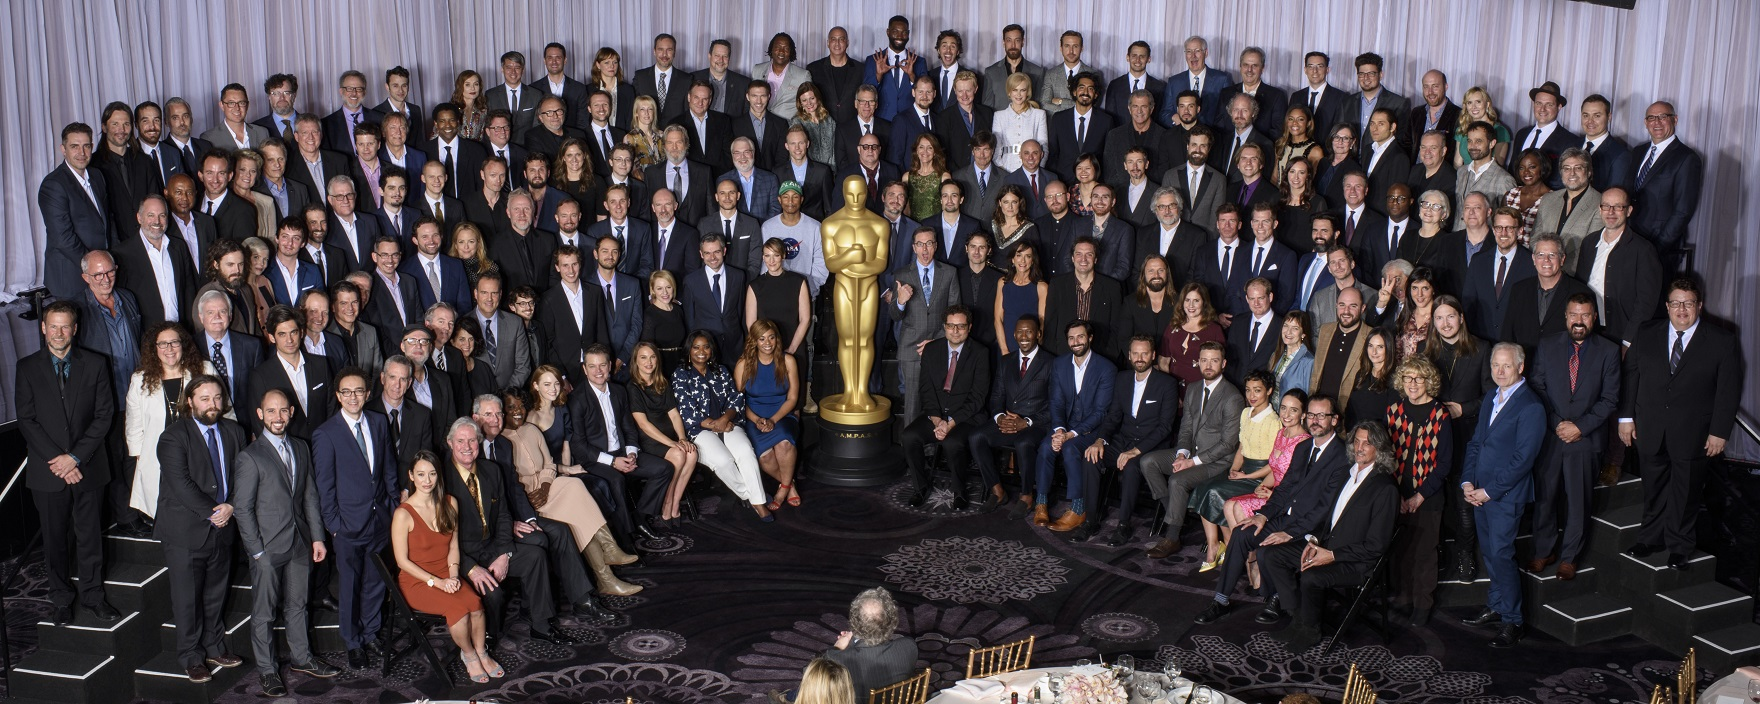 Nominees for the 89th Oscars¨ were celebrated at a luncheon held at the Beverly Hilton, Monday, February 6, 2017. The 89th Oscars will air on Sunday, February 26, live on ABC.